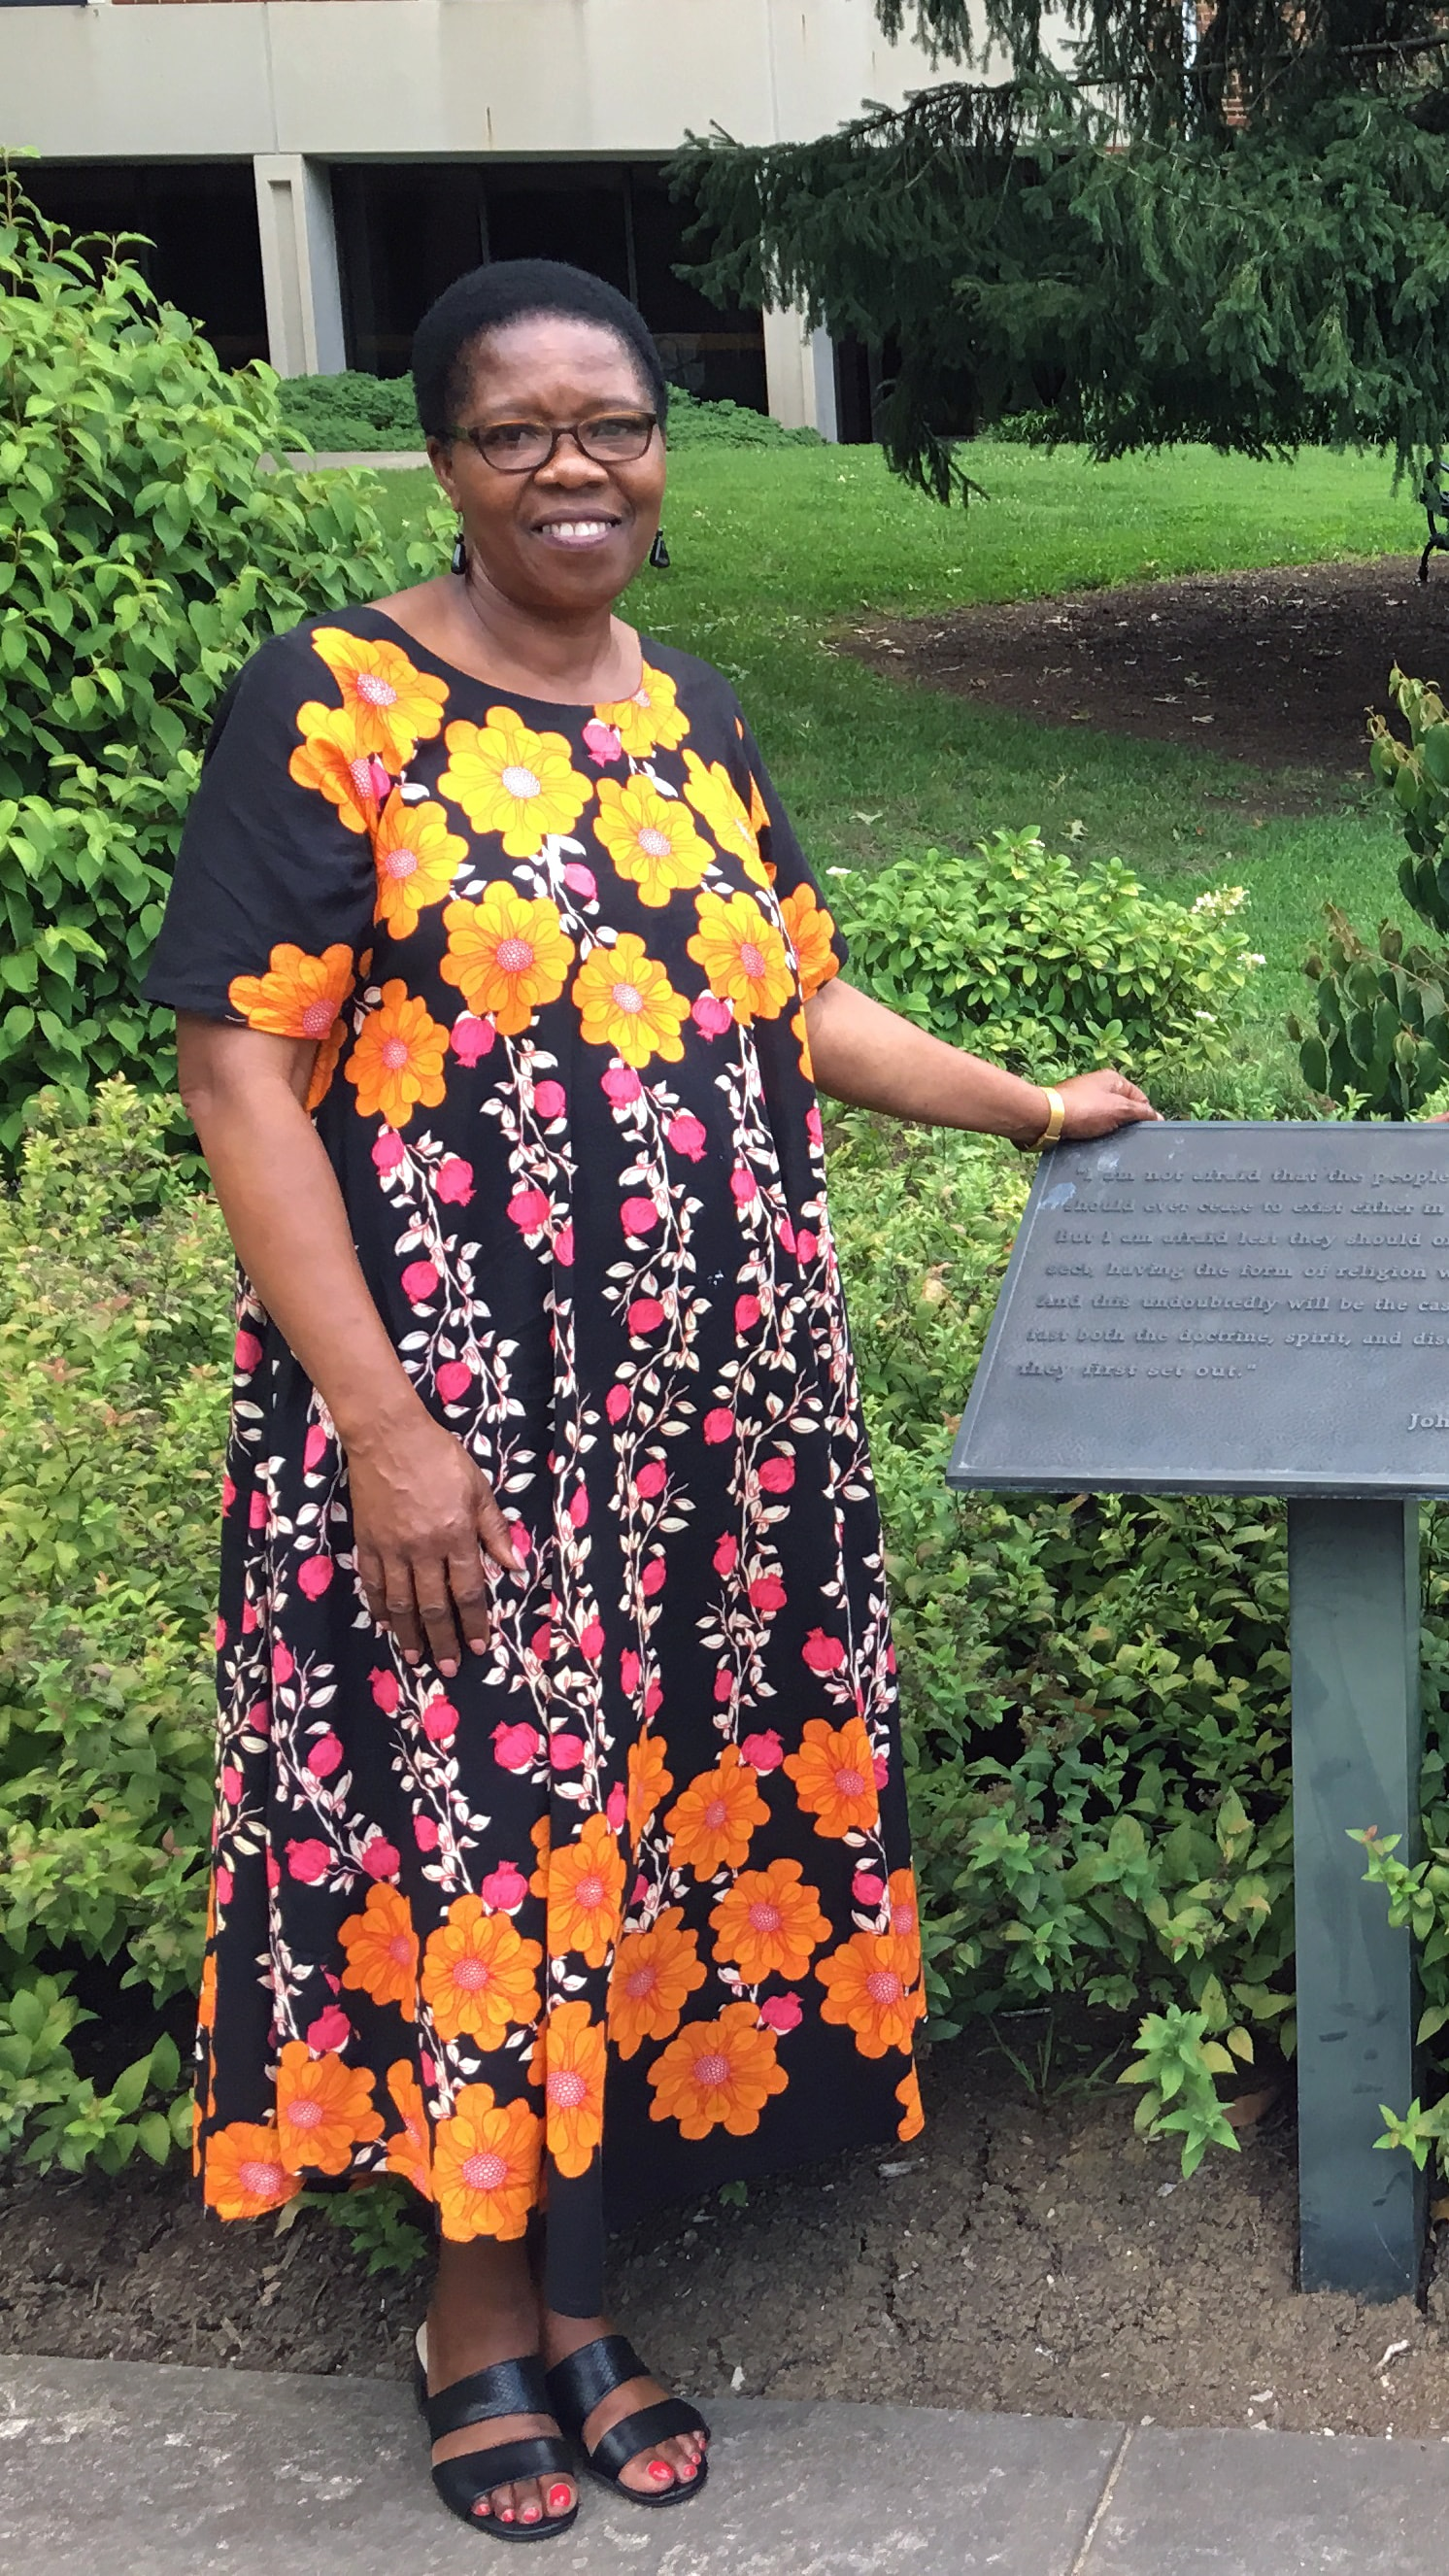 Betty Spiwe Katiyo, a longtime lay leader in The United Methodist Church, visits Asbury Theological Seminary in Lexington, Ky., on Aug. 9.  She died suddenly Aug. 10 after the Commission on General Conference meeting in Lexington. Photo by the Rev. Beth Ann Cook, Indiana Conference.